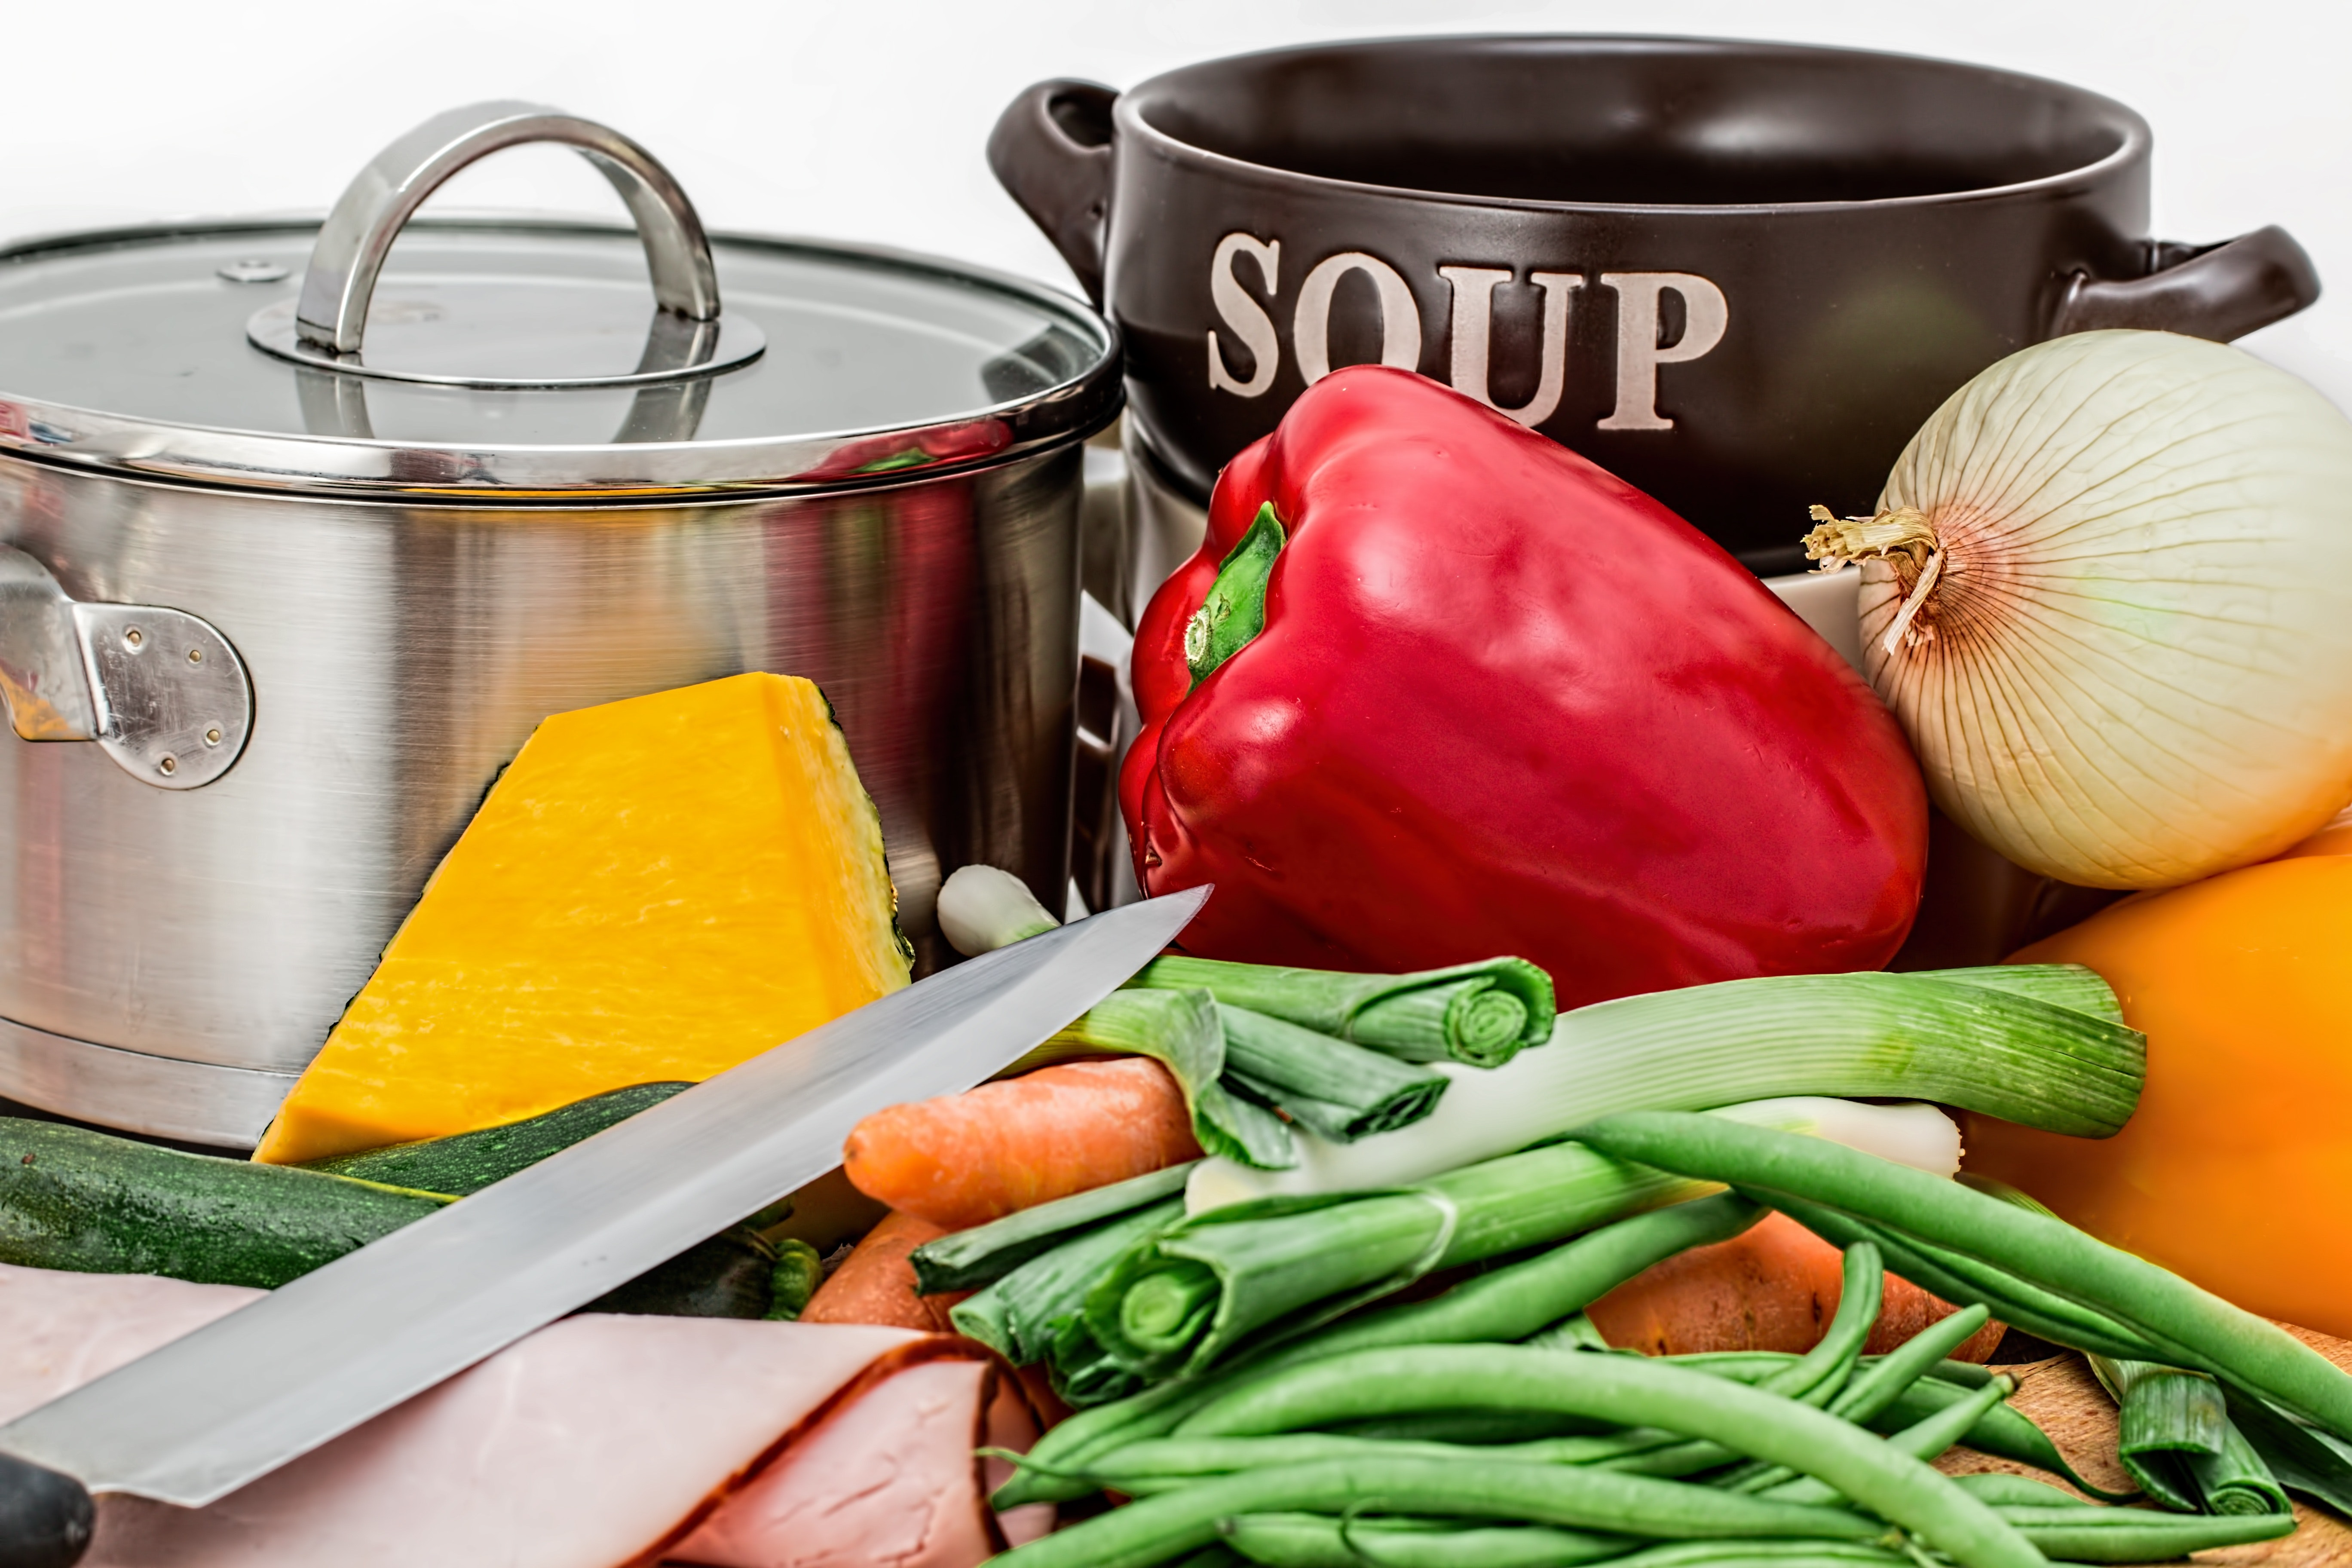 Group of vegetables near stainless steel cooking bowl photo